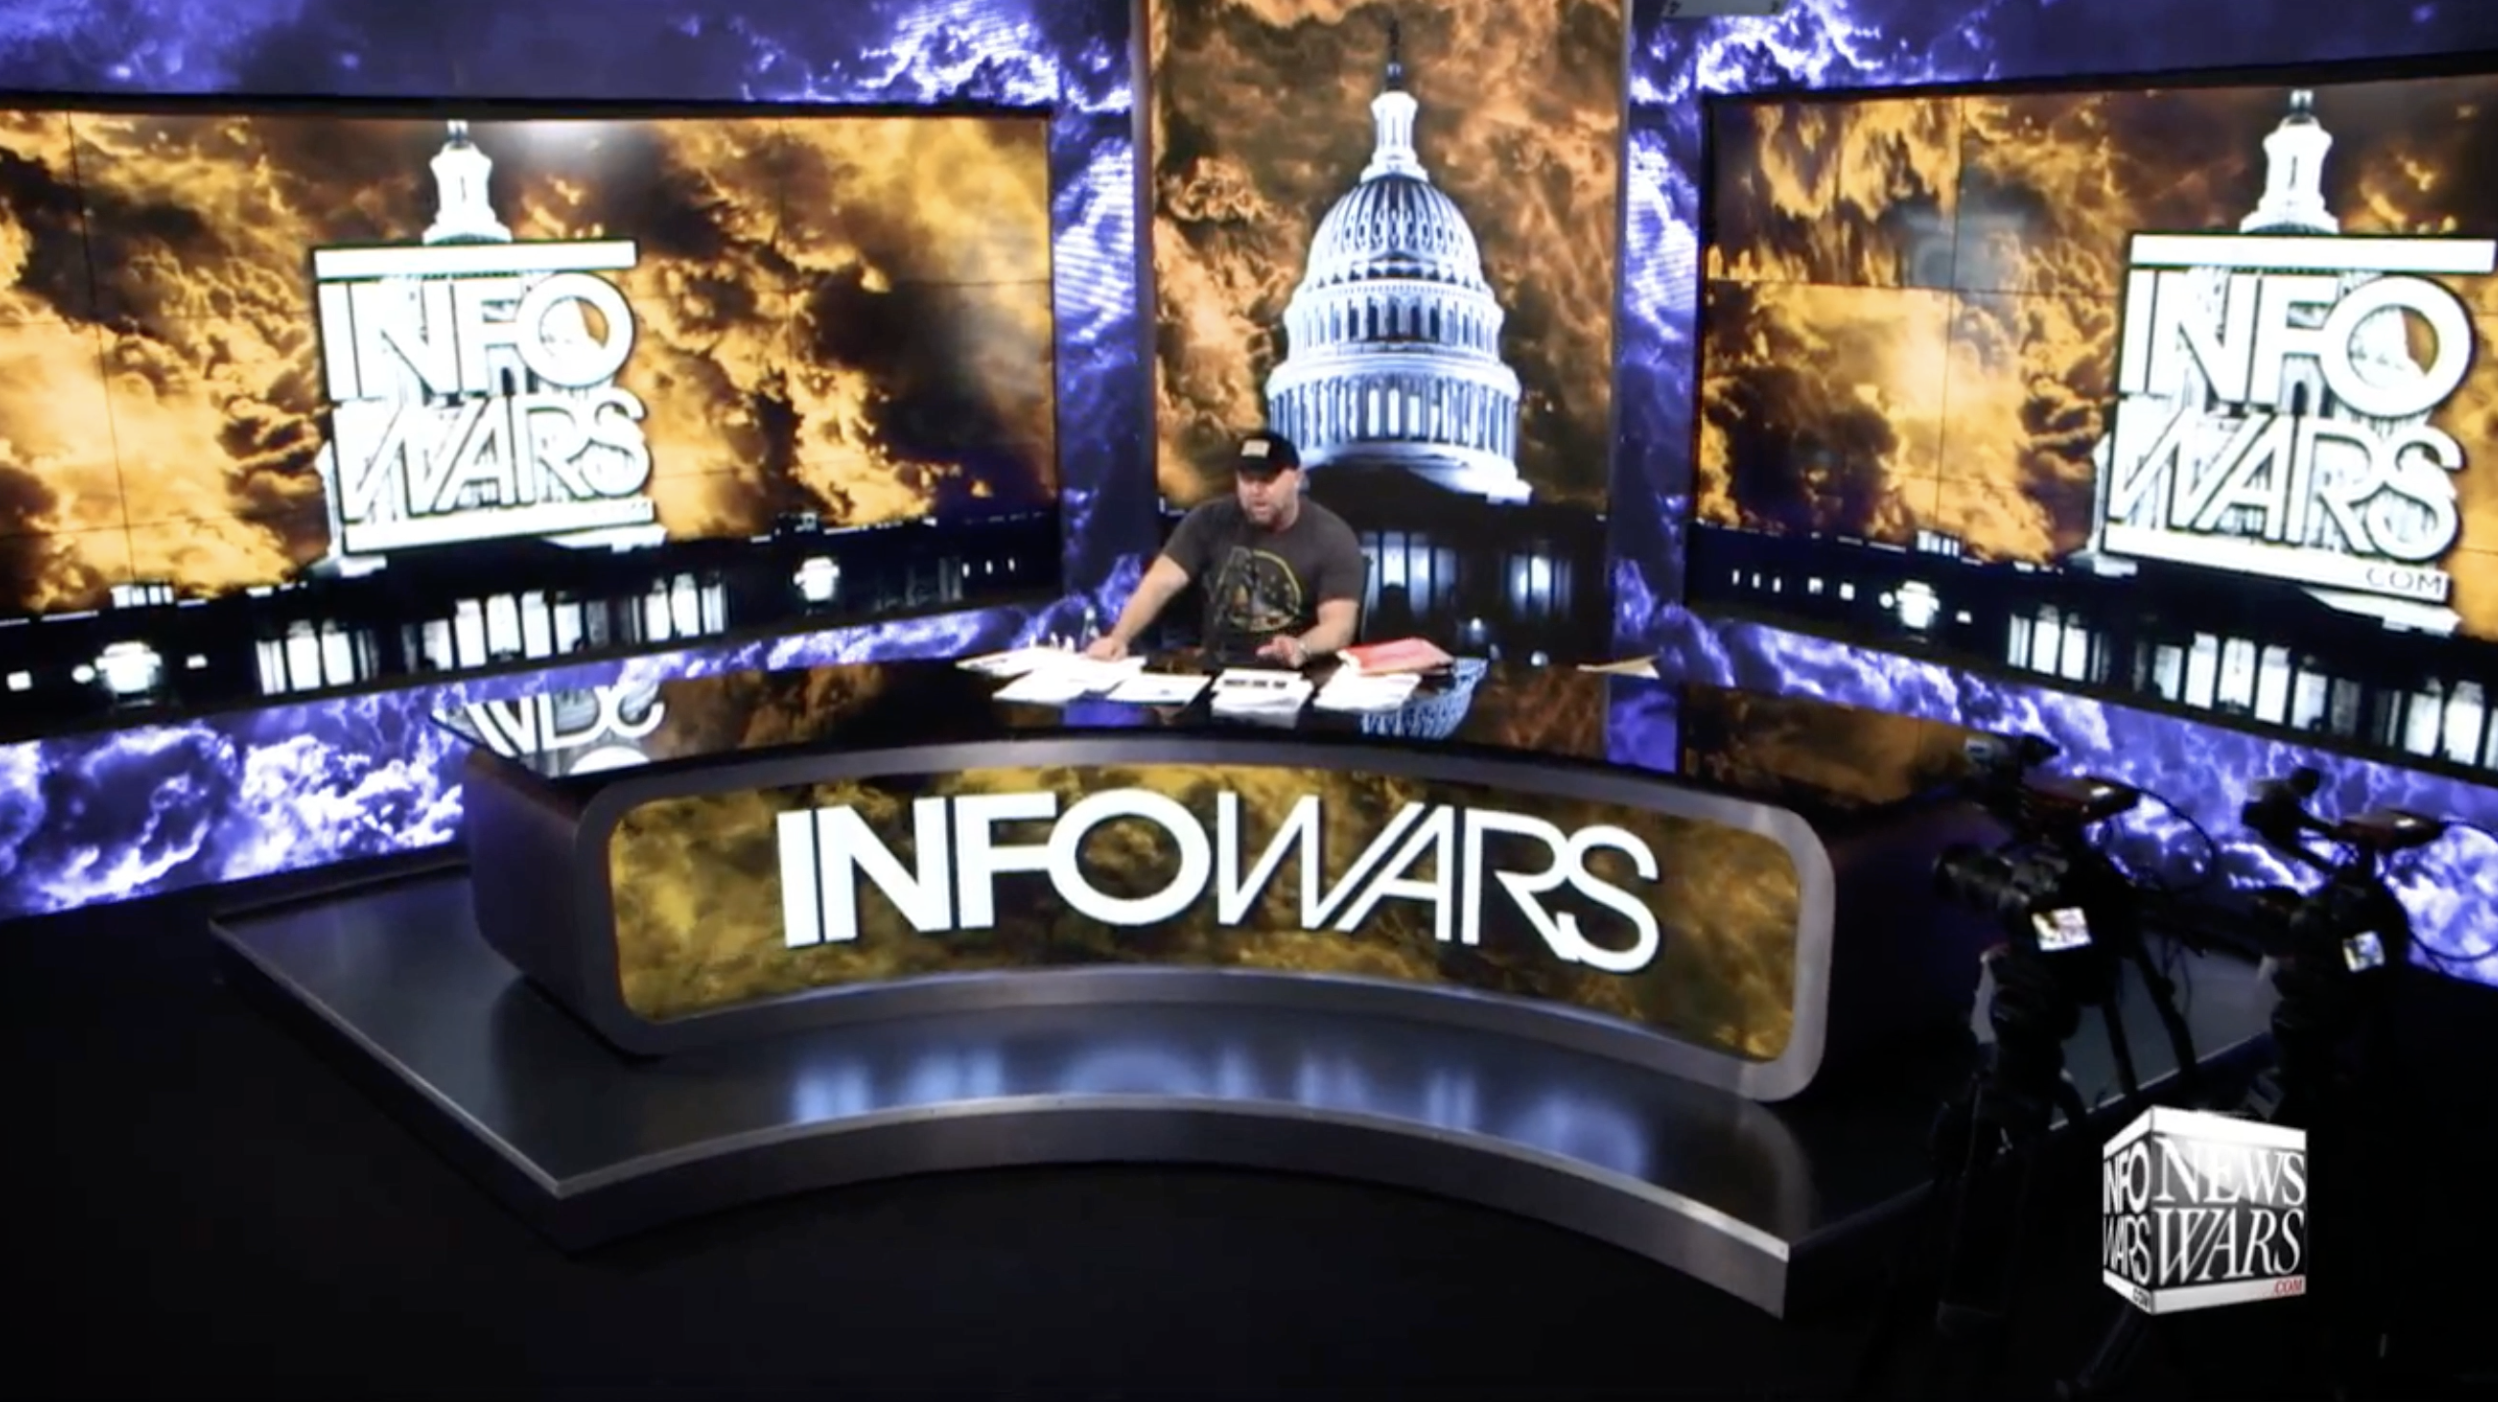 Alex Jones Infowars 3 10 2020